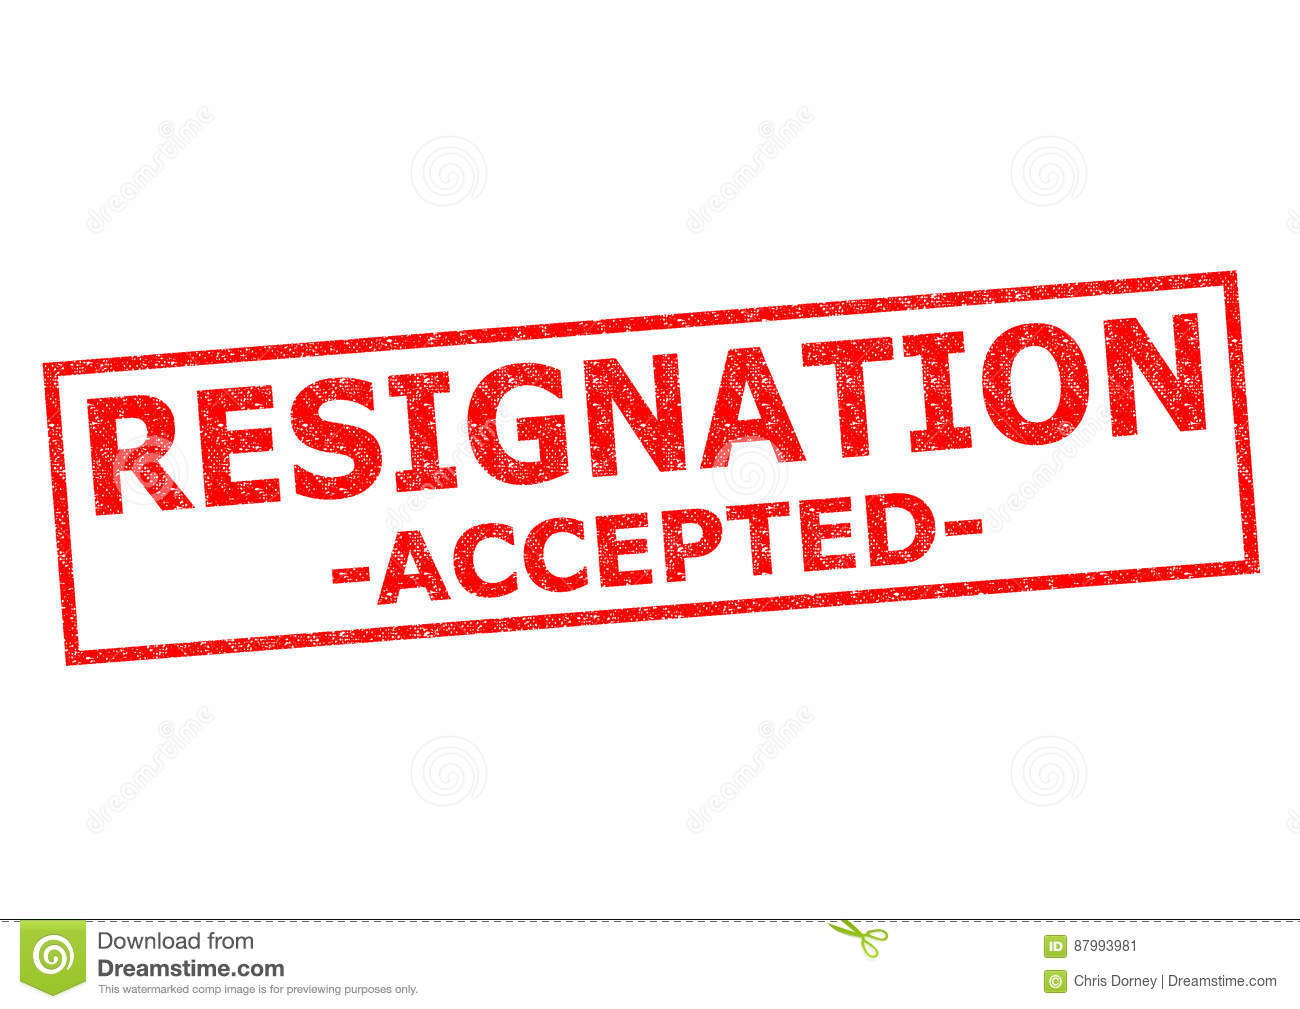 RESIGNATION ACCEPTED